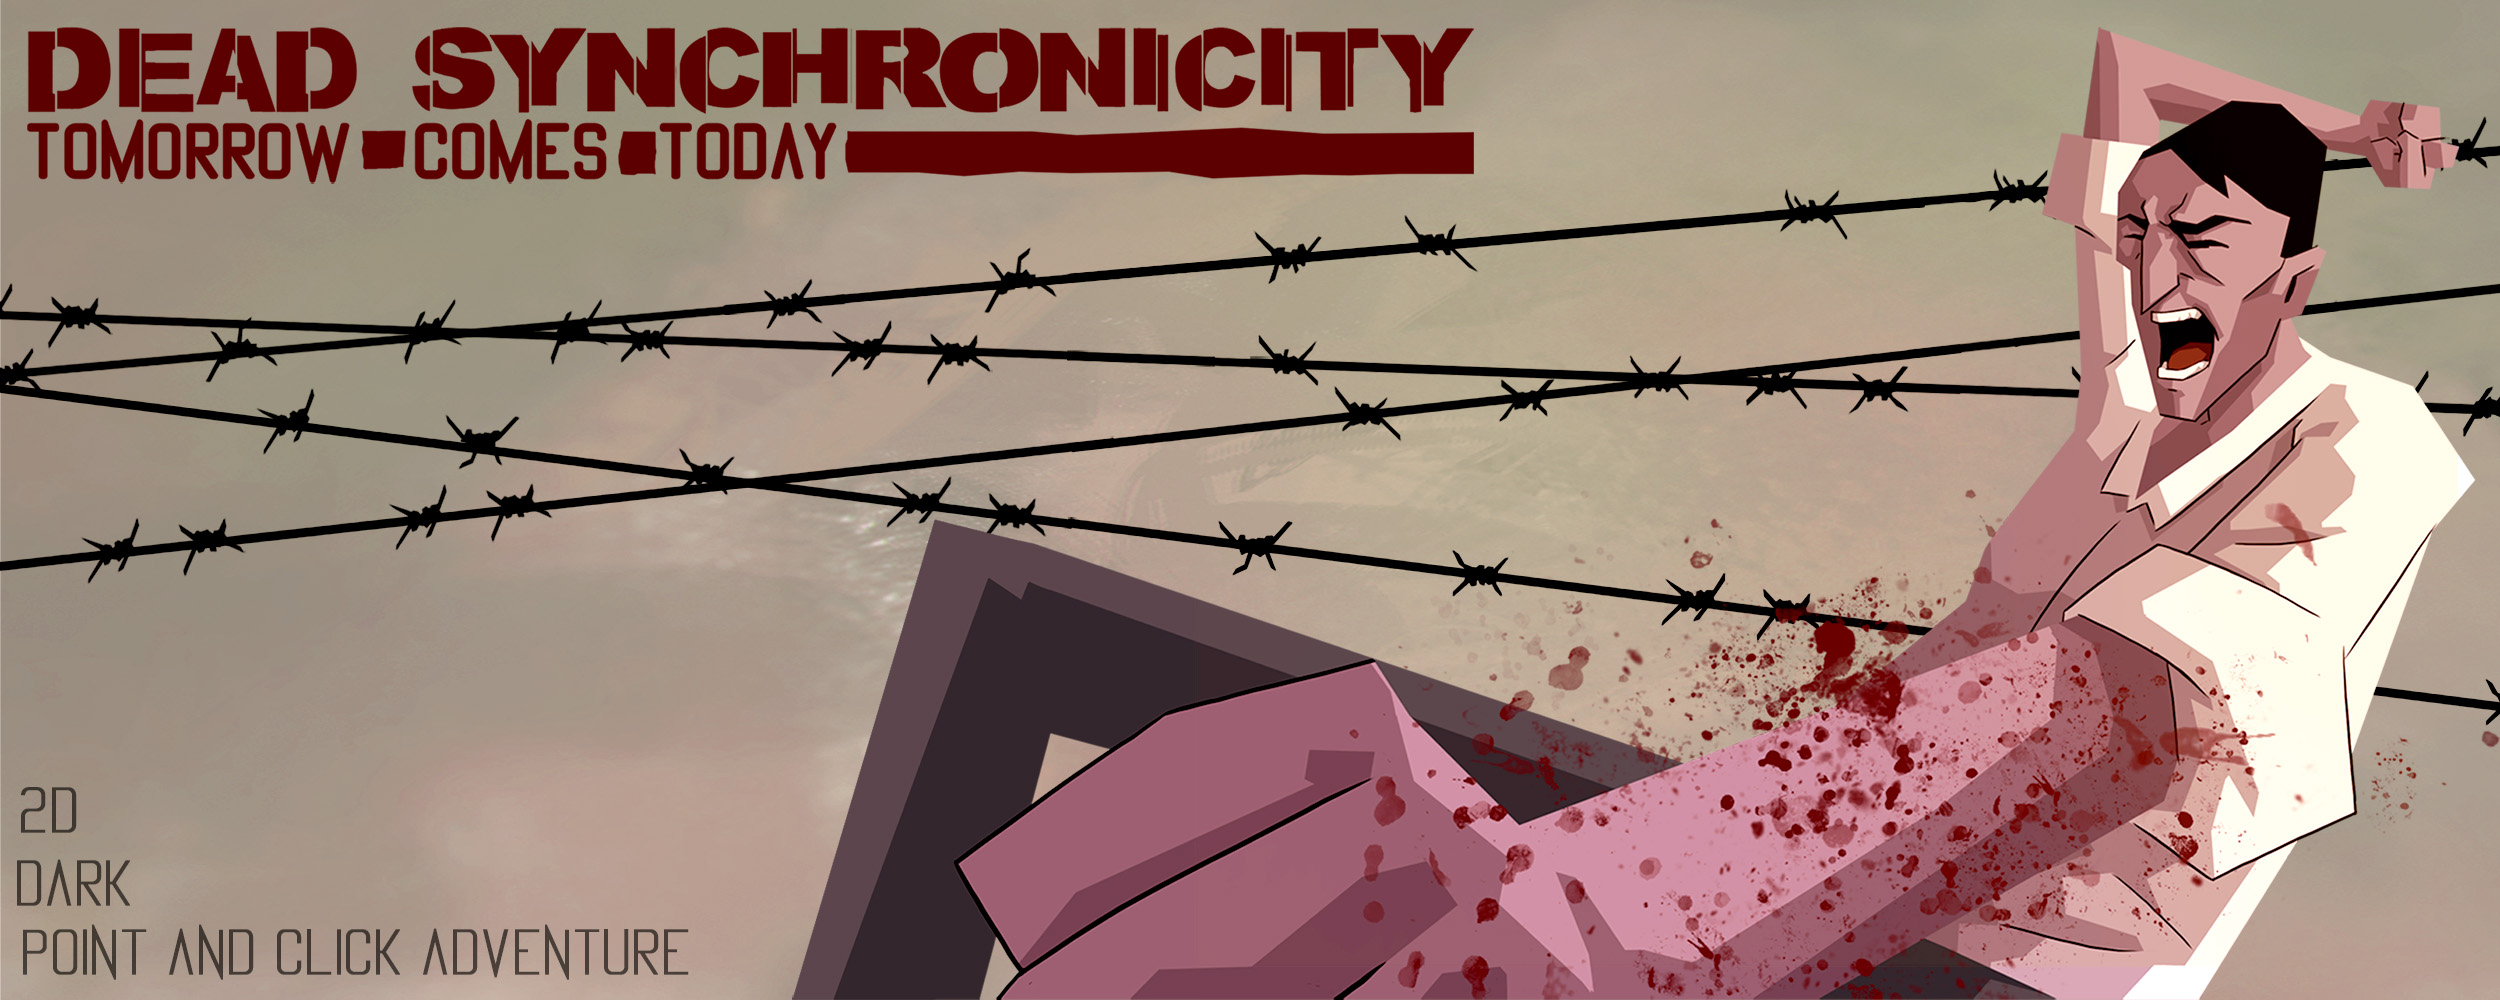 FICTIORAMA STUDIOS - Dead Synchronicity - DS Banner